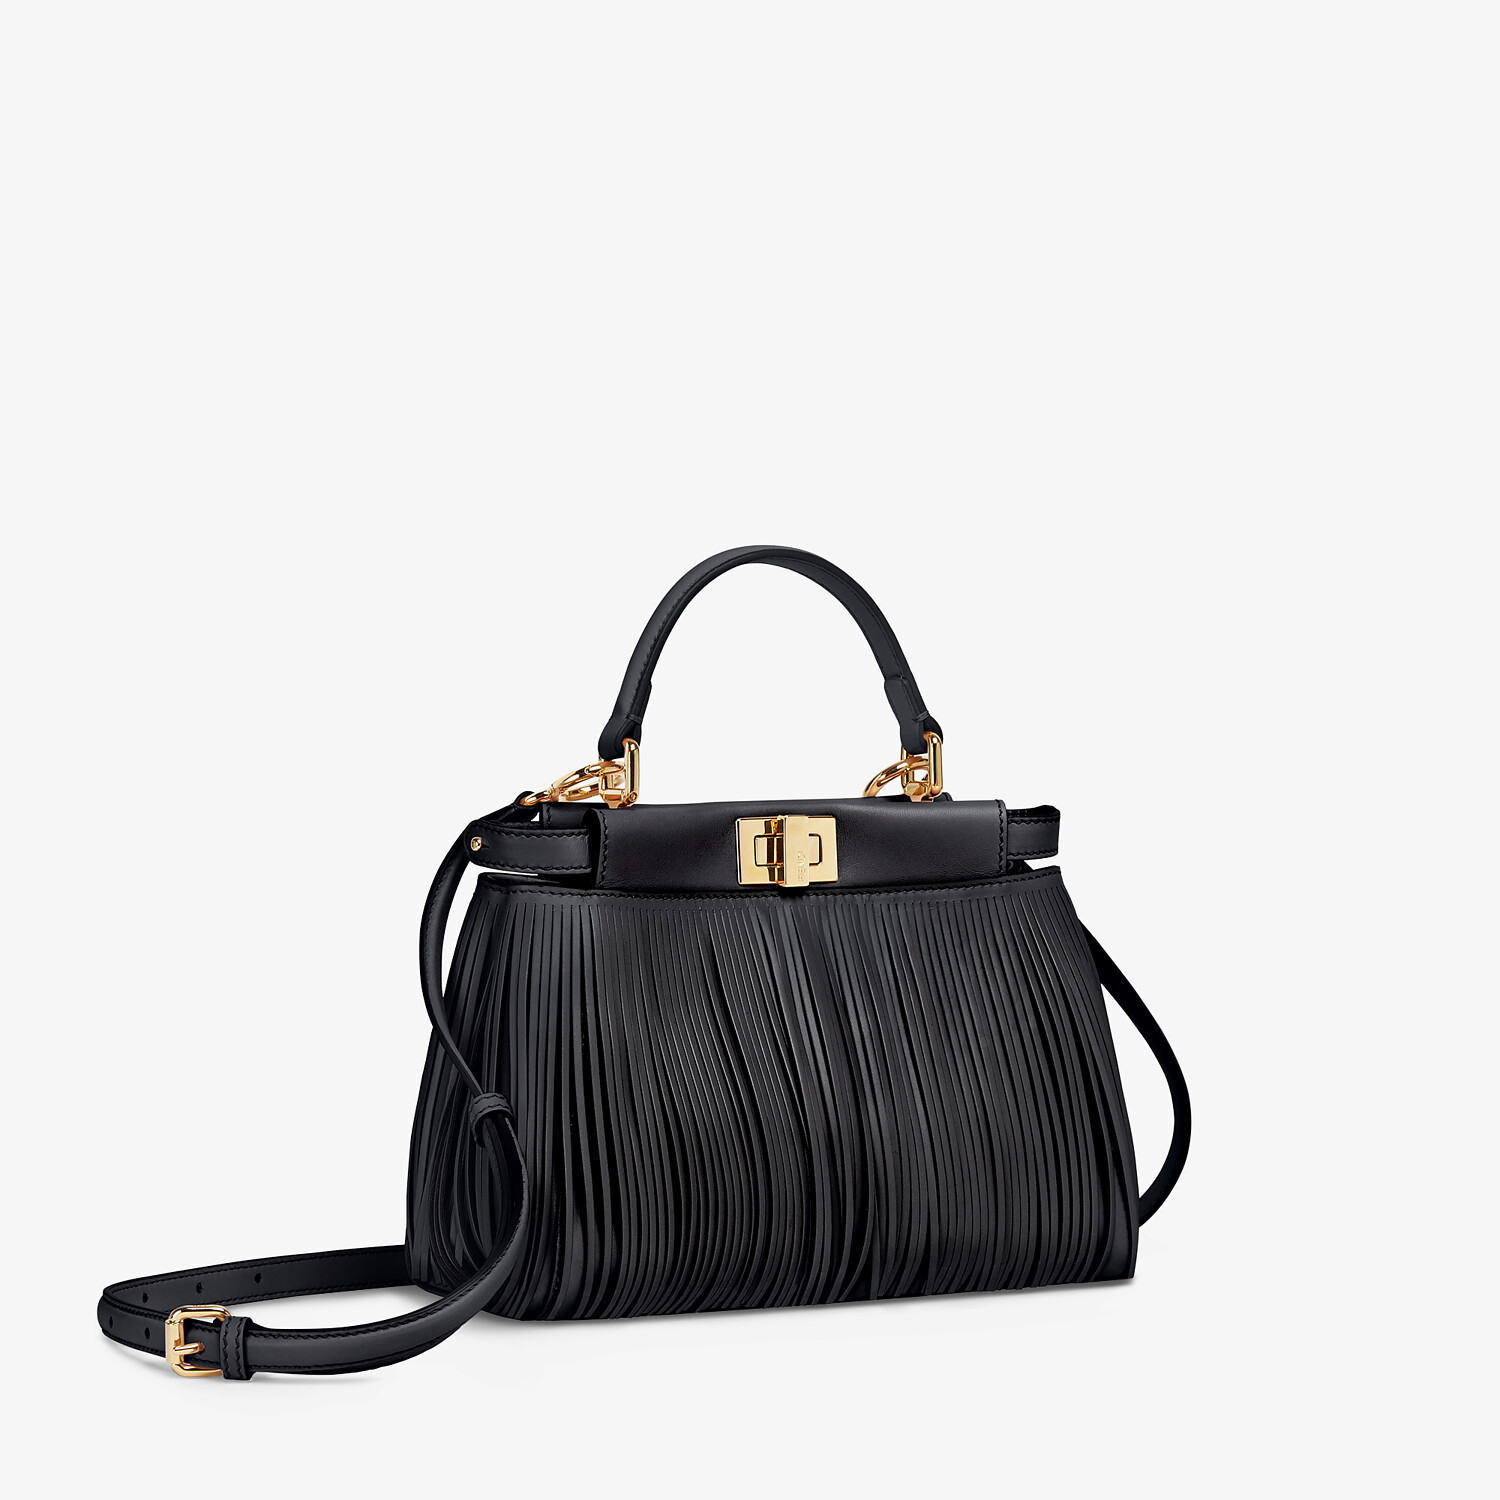 FENDI PEEKABOO ICONIC MINI - Black leather bag with fringes - view 3 detail